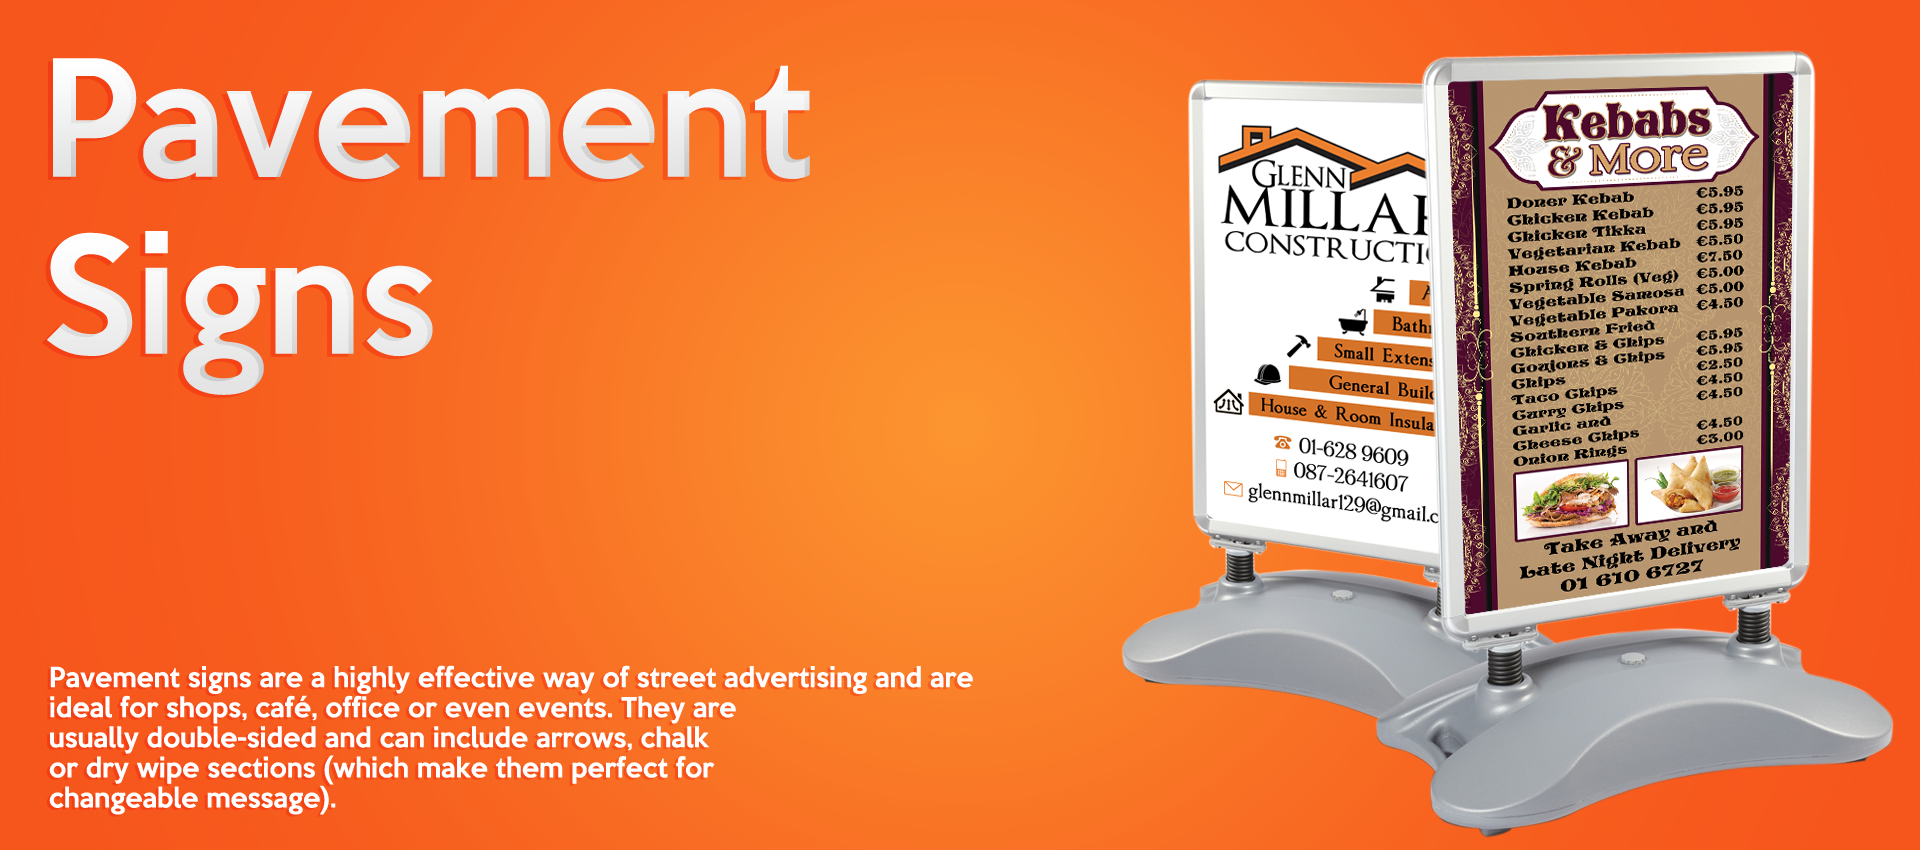 Pavement Signs Banner